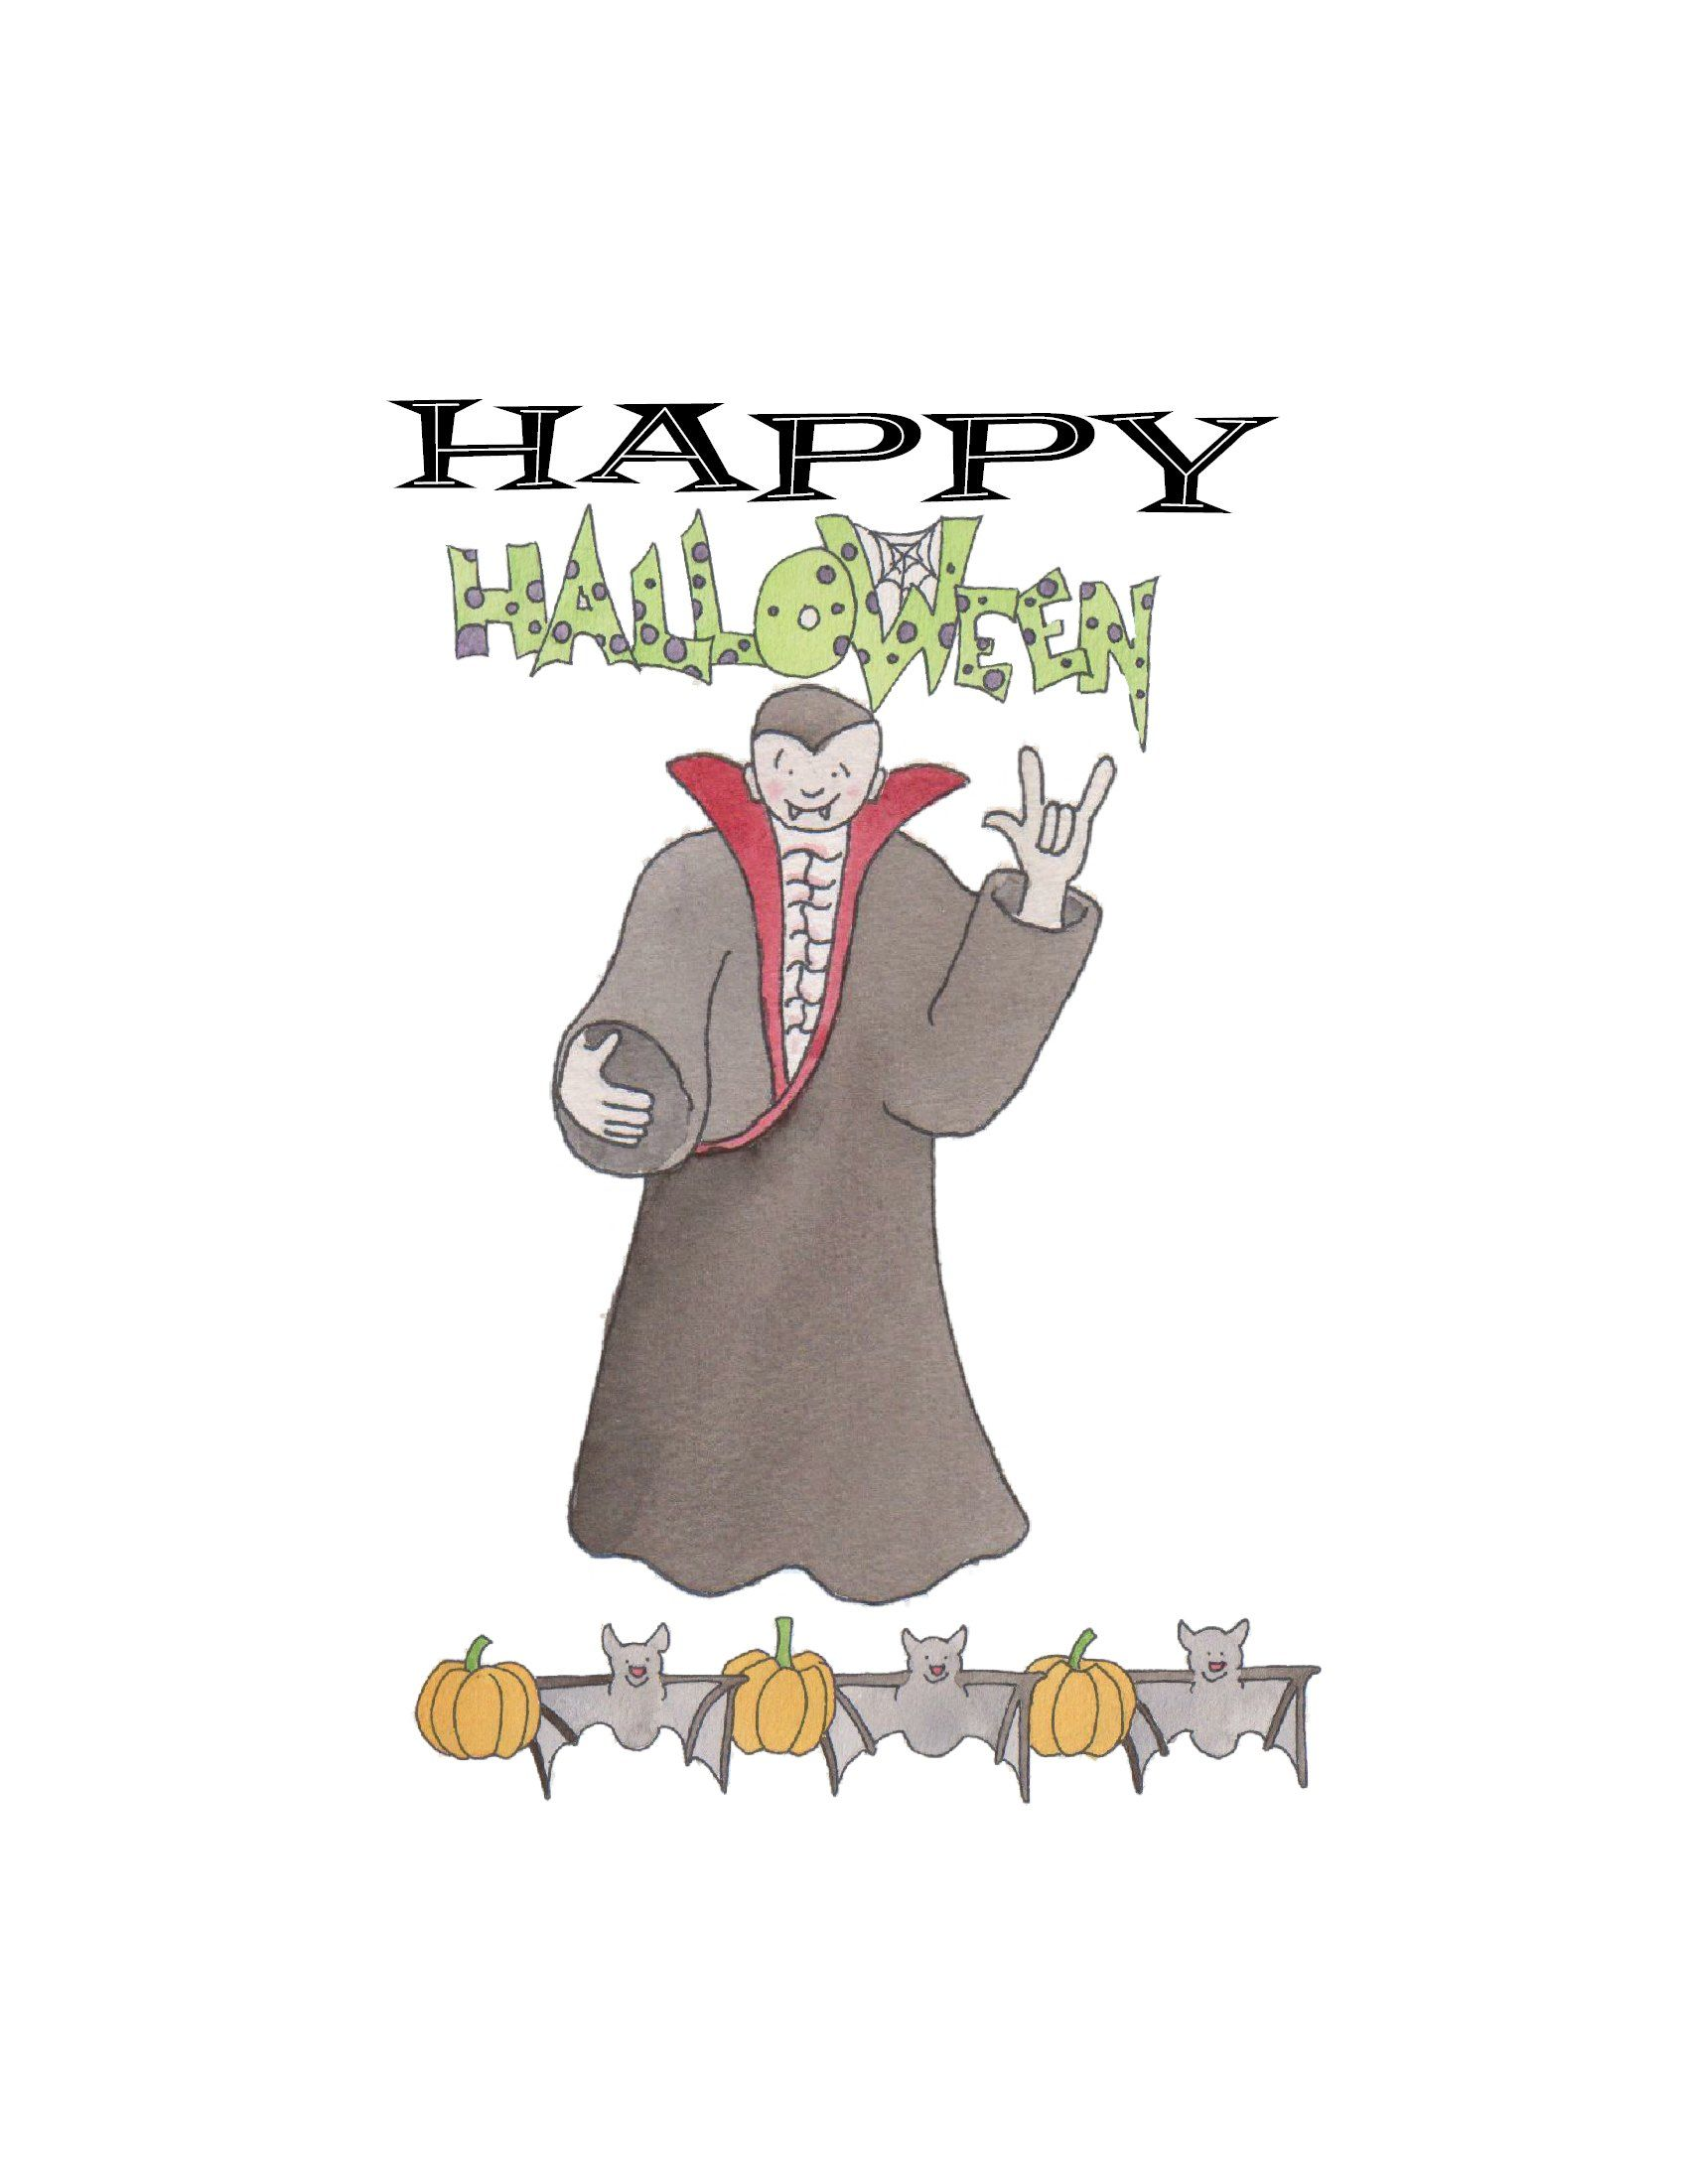 Happy Halloween Asl Ily Sign For Halloween Check Back